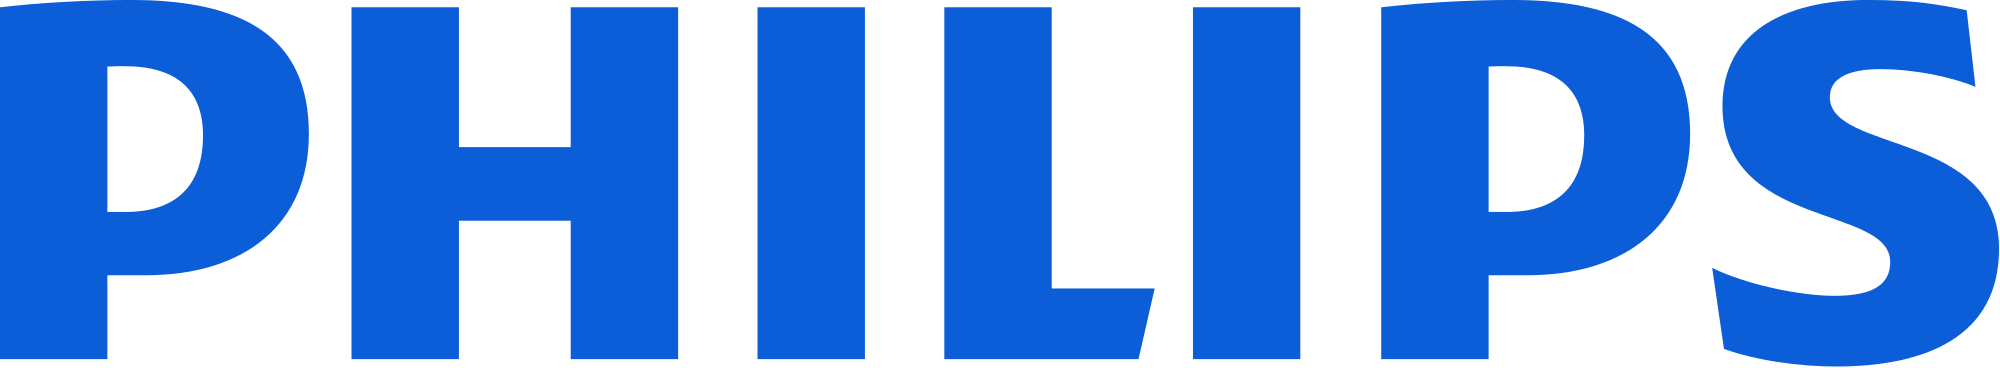 Philips_logo_new-svg.png